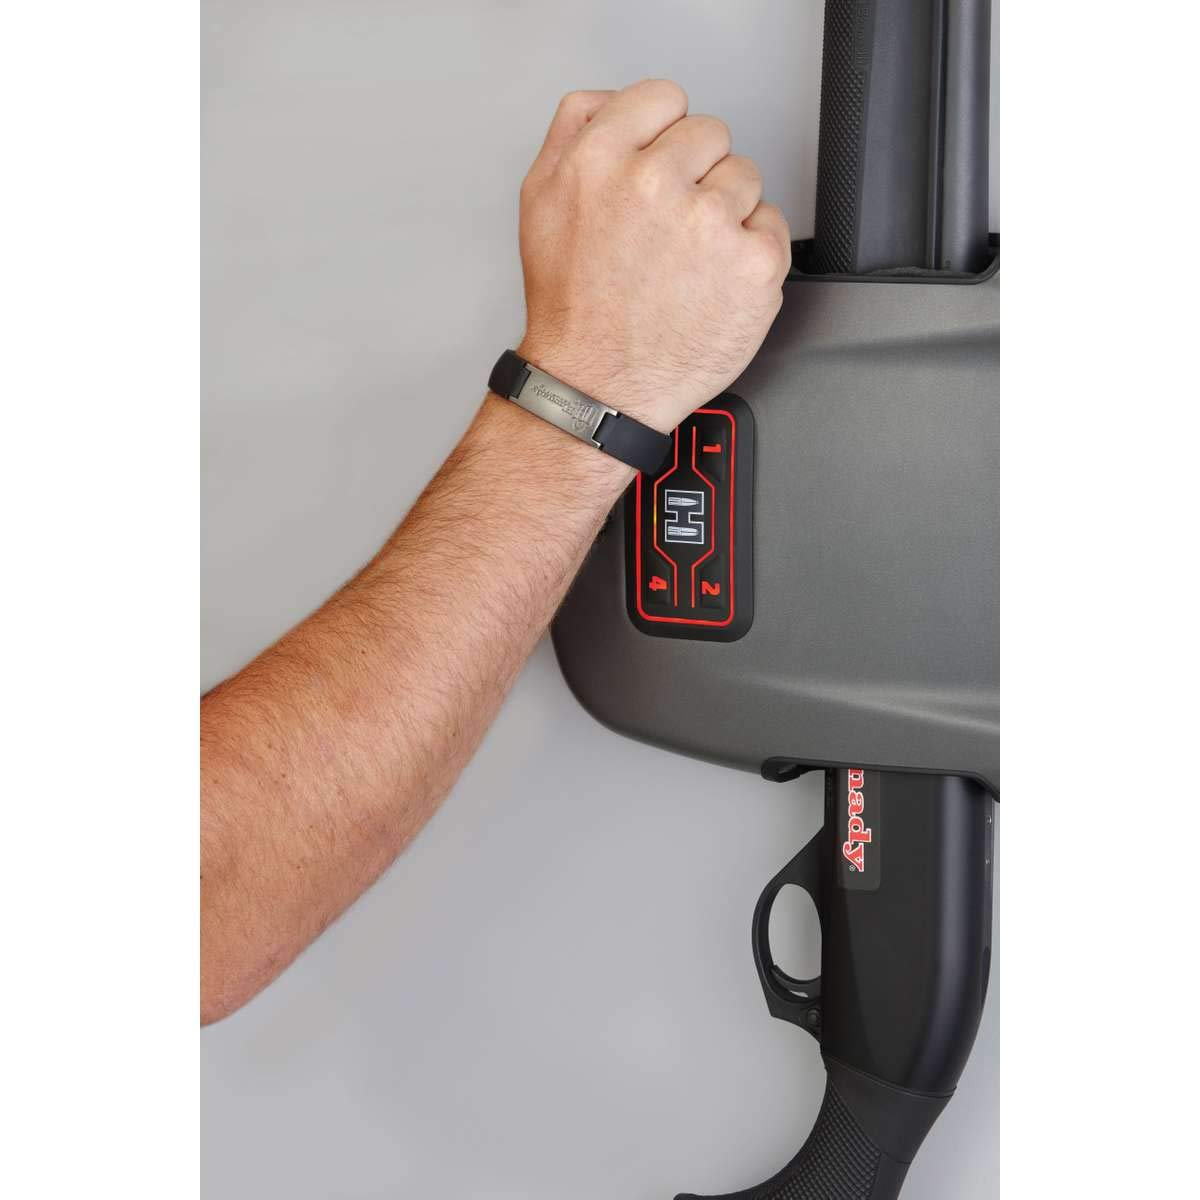 Hornady Rapid Safe Wall Mount for Long Guns - RFID Entry Quick Access Safe For Shotguns and Rifles by Hornady